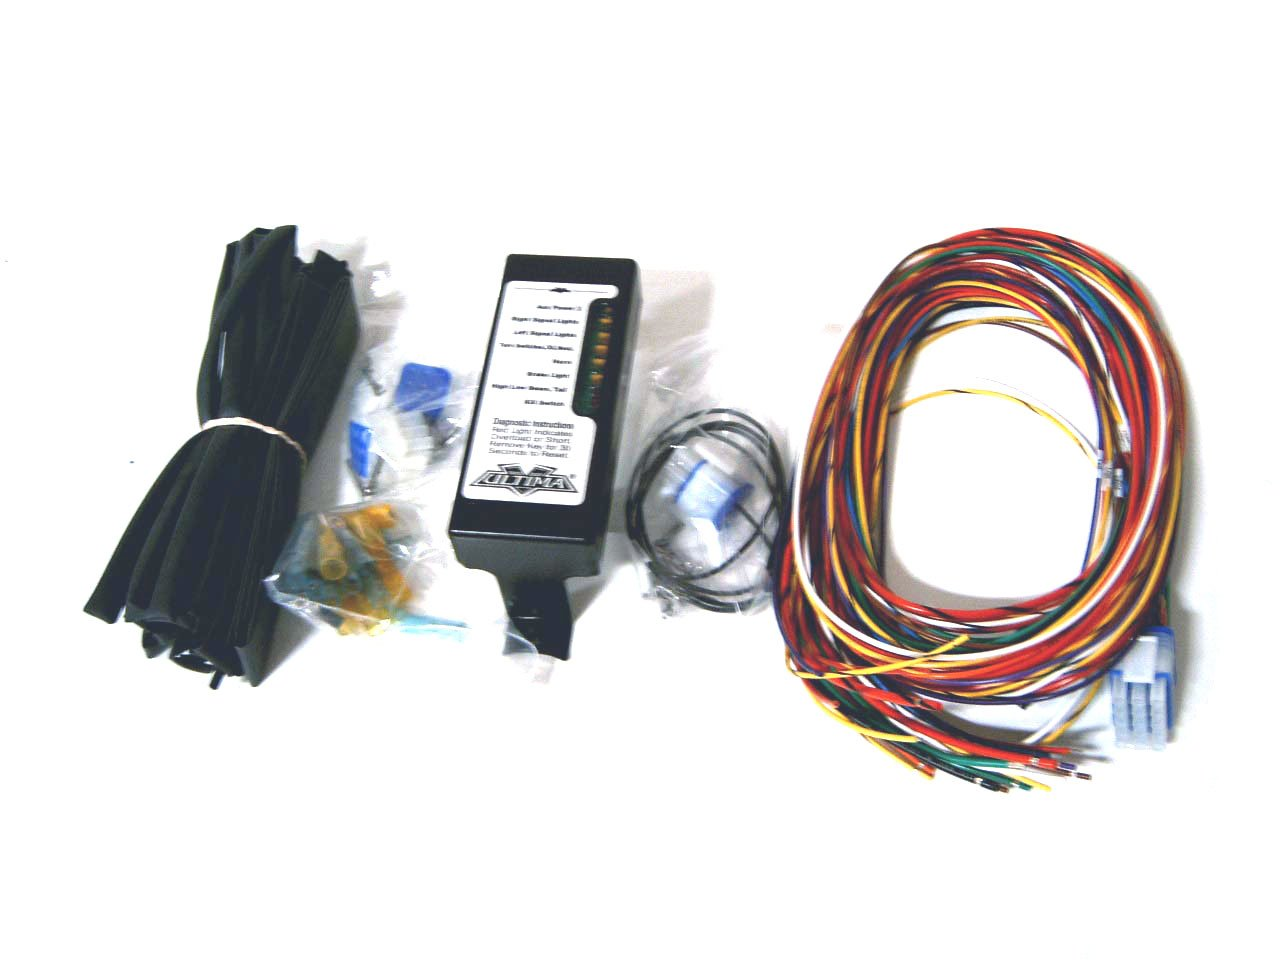 61DV2Bq5%2BHL._SL1280_ amazon com ultima complete wiring harness kit for harley davidson Universal Wiring Harness Diagram at gsmx.co